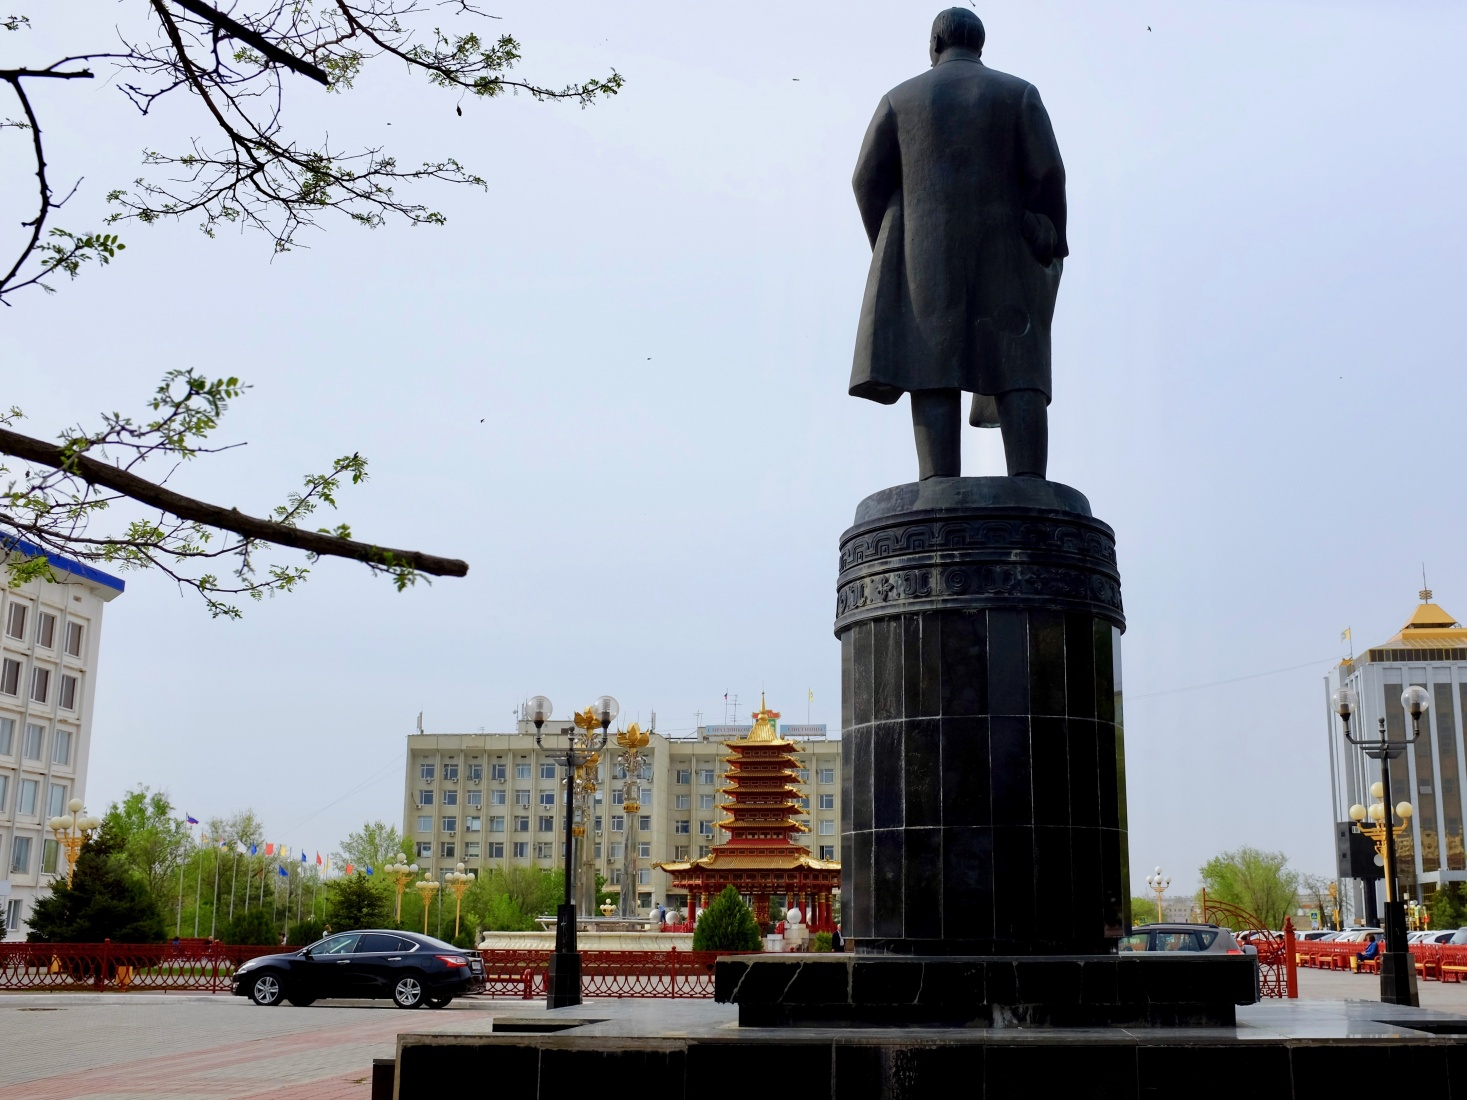 A statue of Lenin on Elista, Russia's central square, the bright Pagoda of the Seven Days in the background.